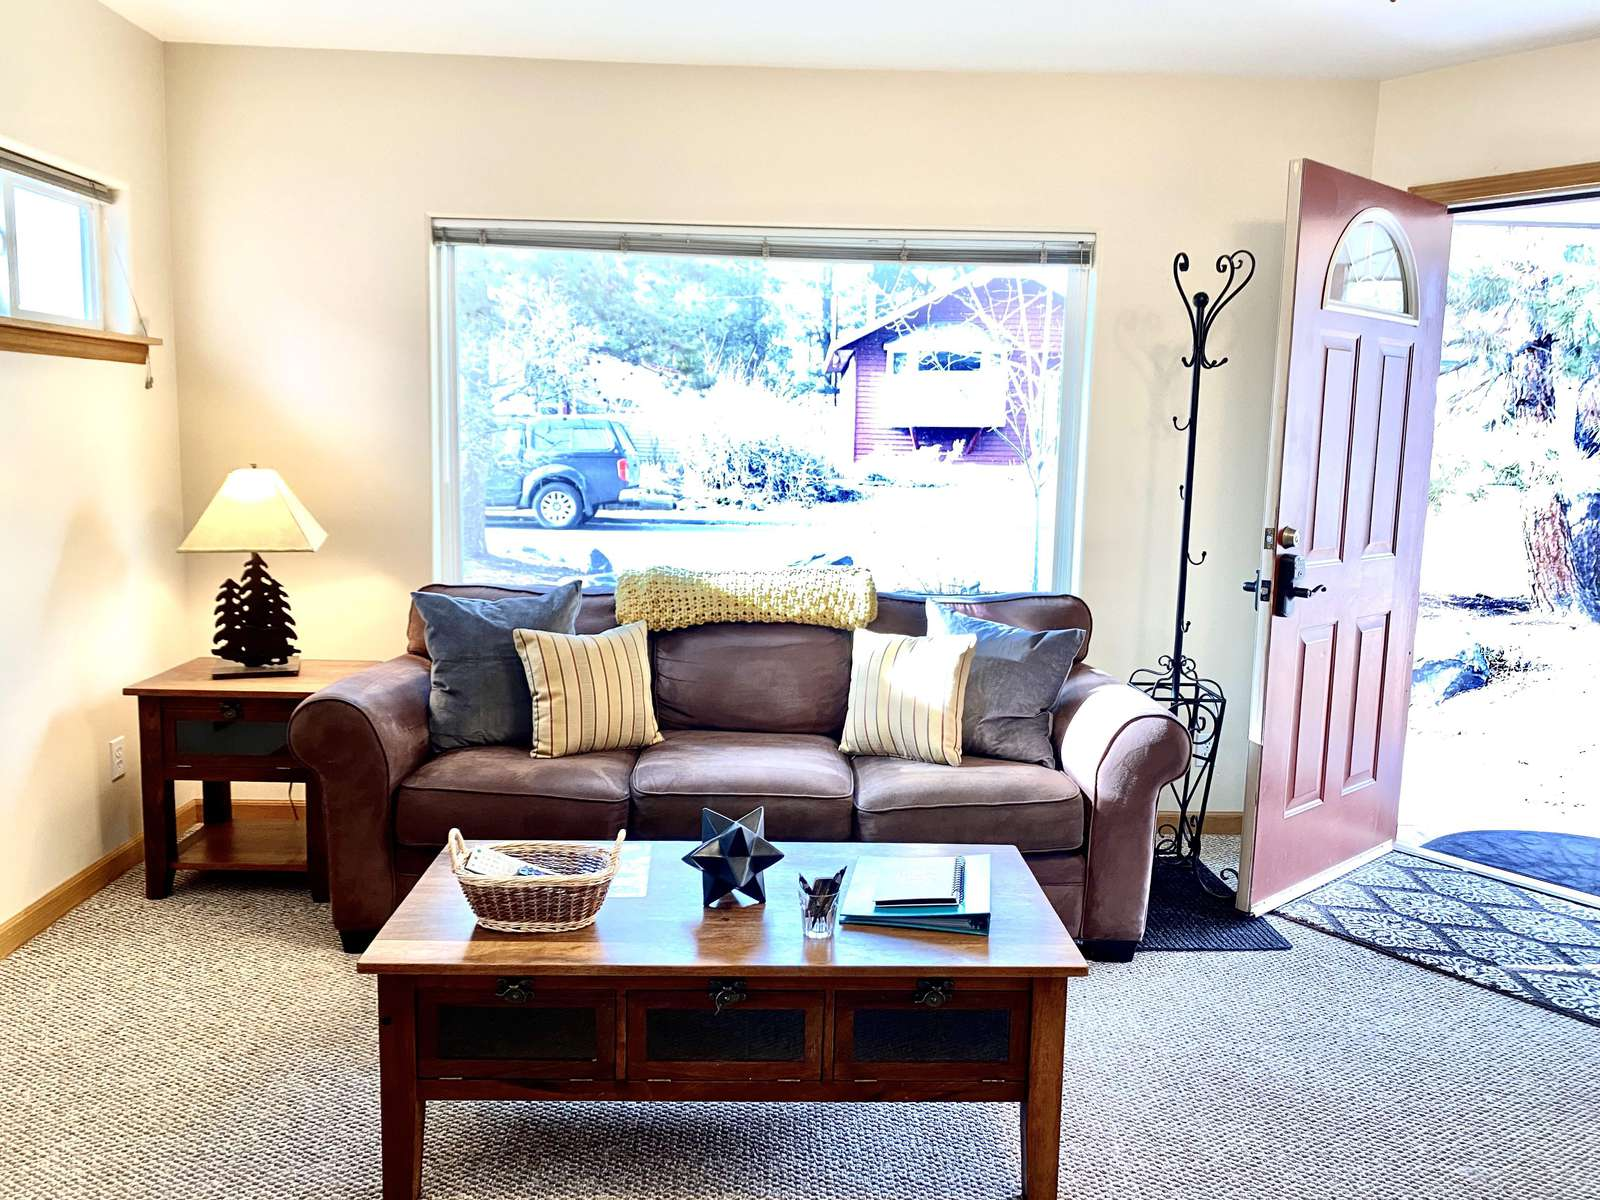 Come on in, kick off your shoes and get ready to enjoy this amazing neighborhood - property